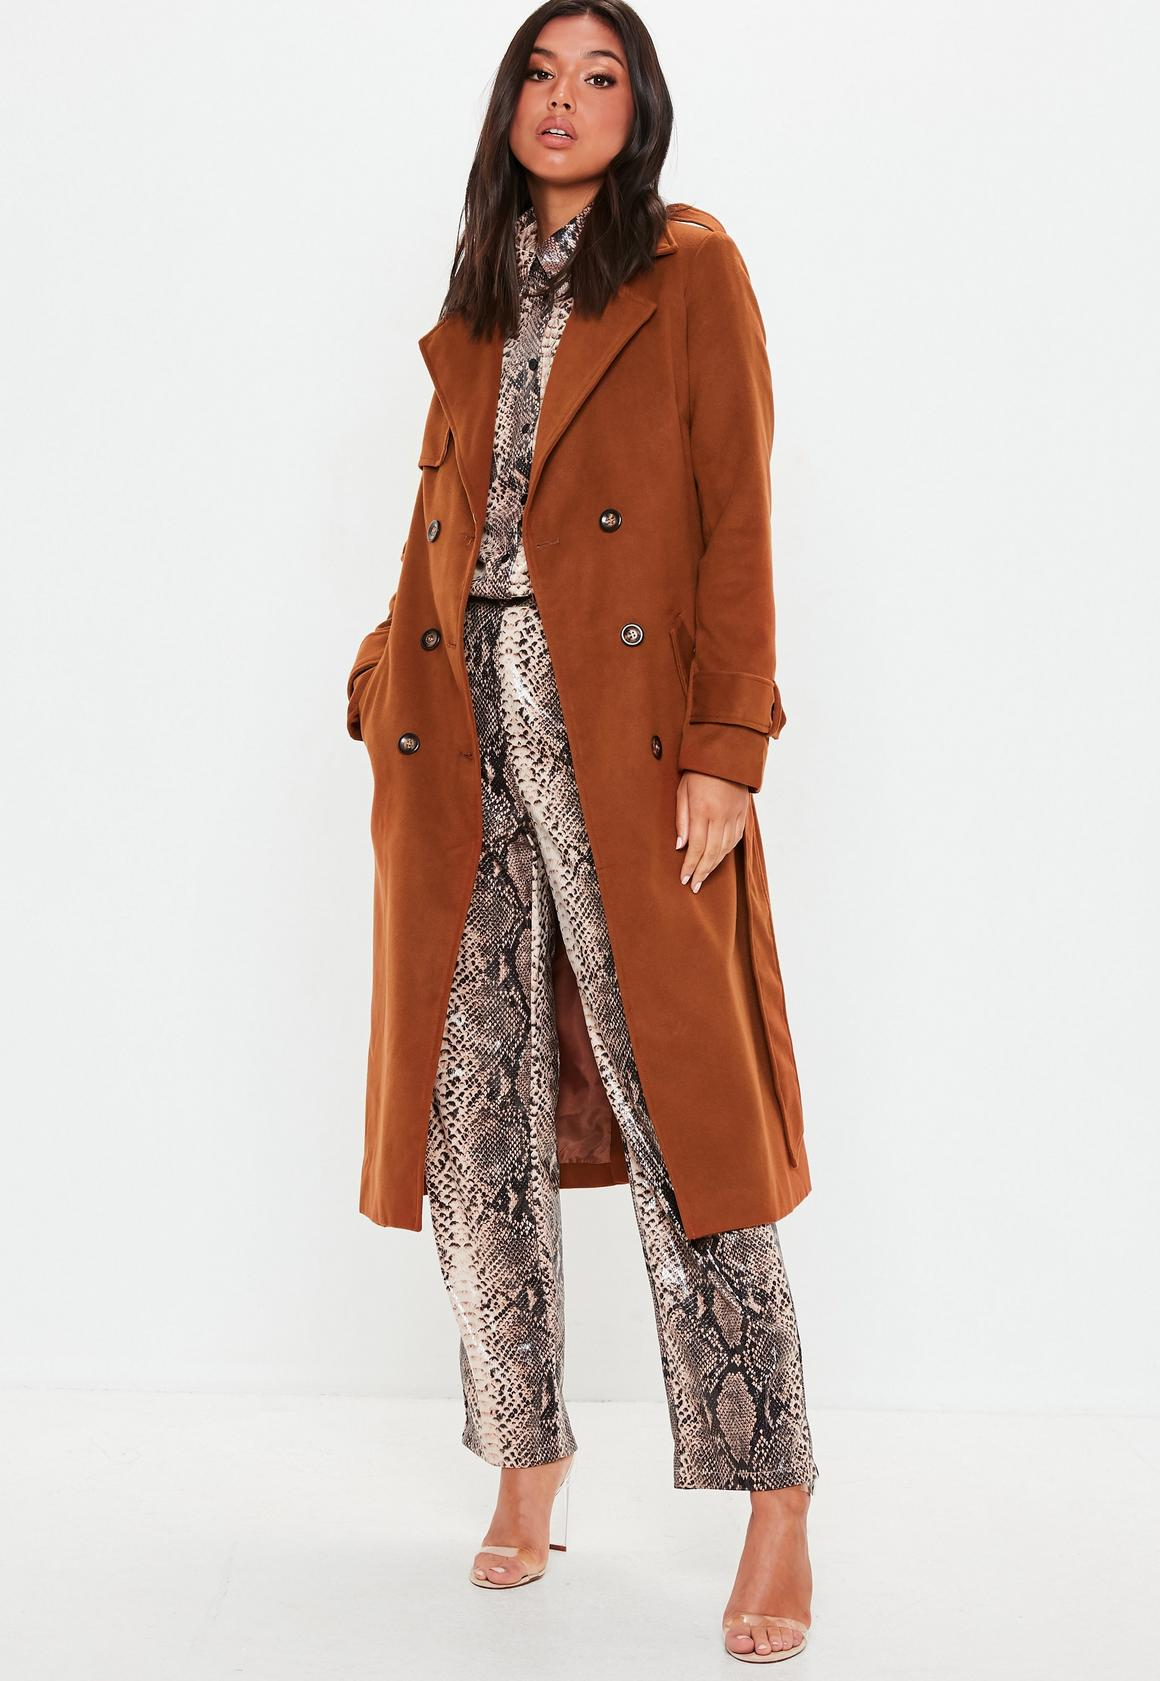 41b3b6caa The Hottest Autumn Coats On The Market Right Now – The National Student